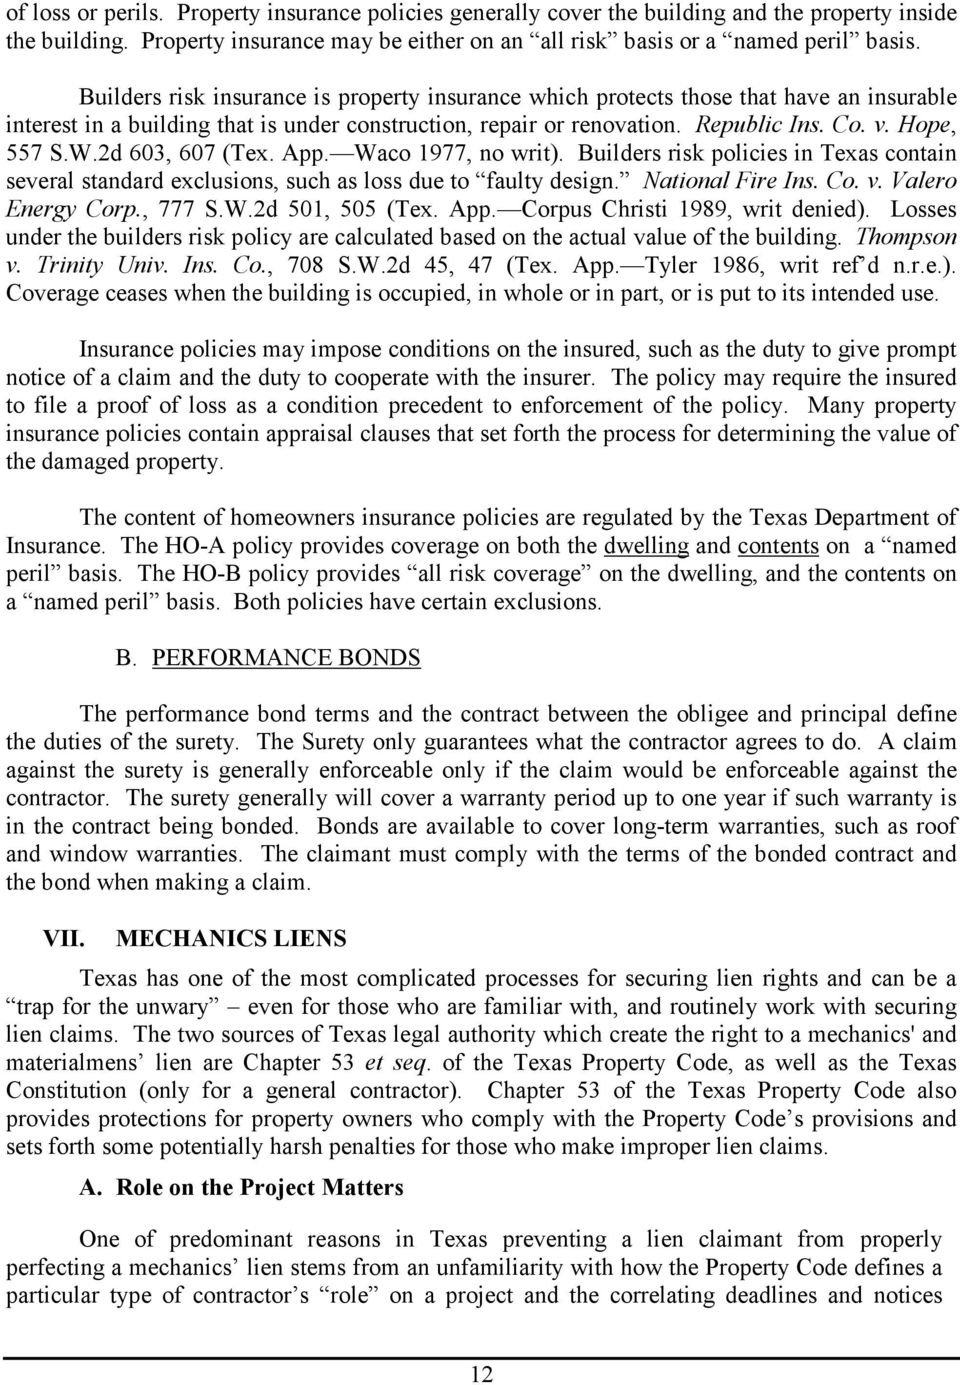 2d 603, 607 (Tex. App. Waco 1977, no writ). Builders risk policies in Texas contain several standard exclusions, such as loss due to faulty design. National Fire Ins. Co. v. Valero Energy Corp.